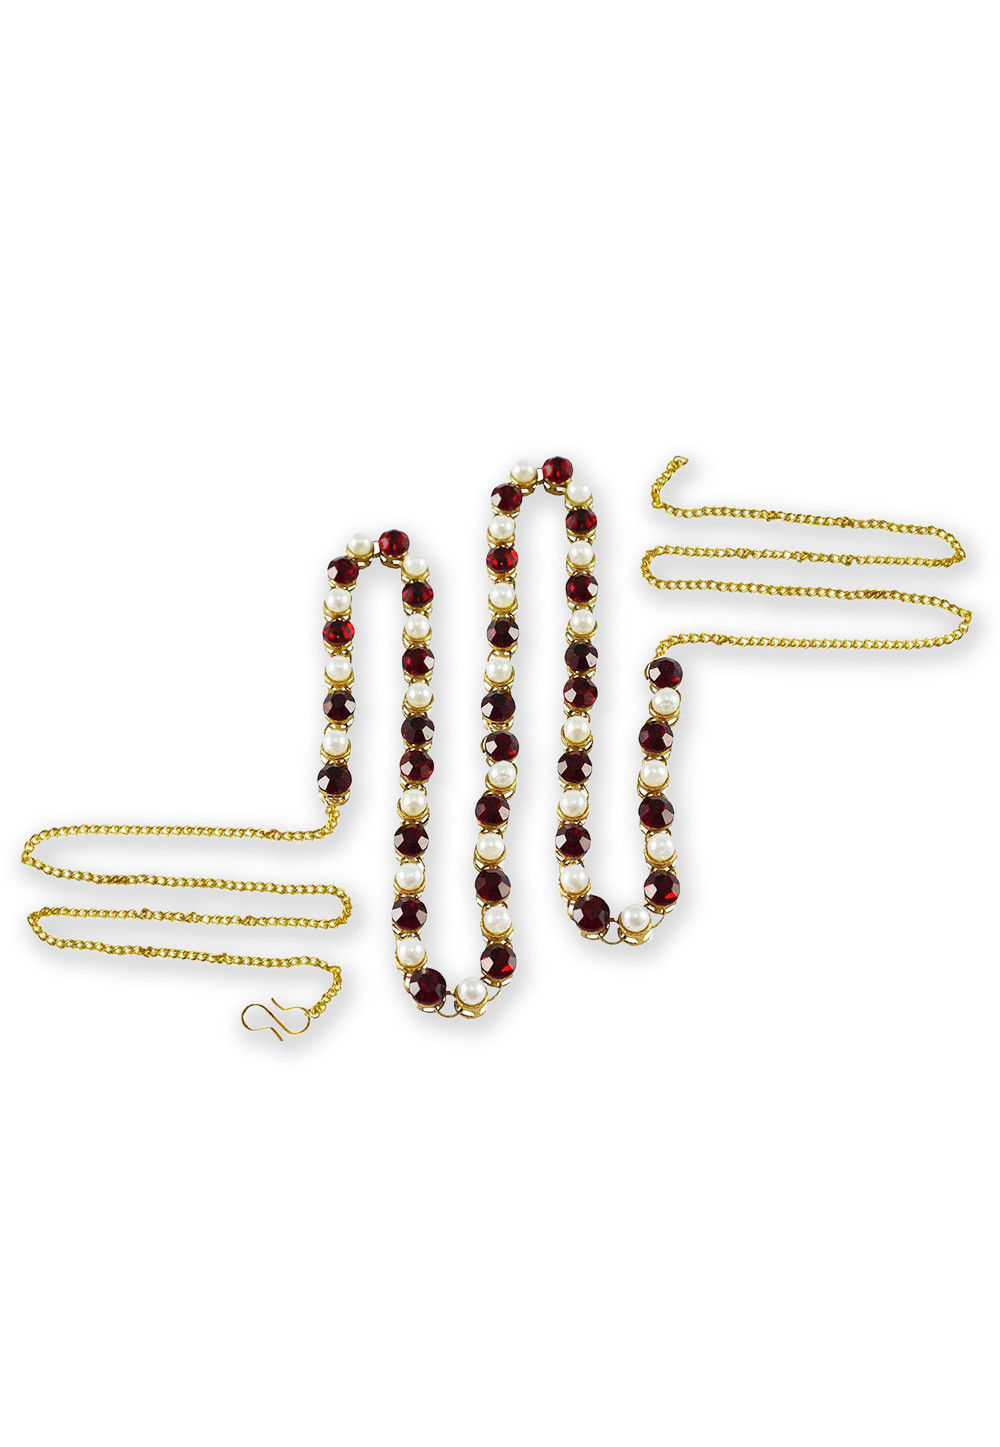 Stones Studded Waist Chain in Maroon and White